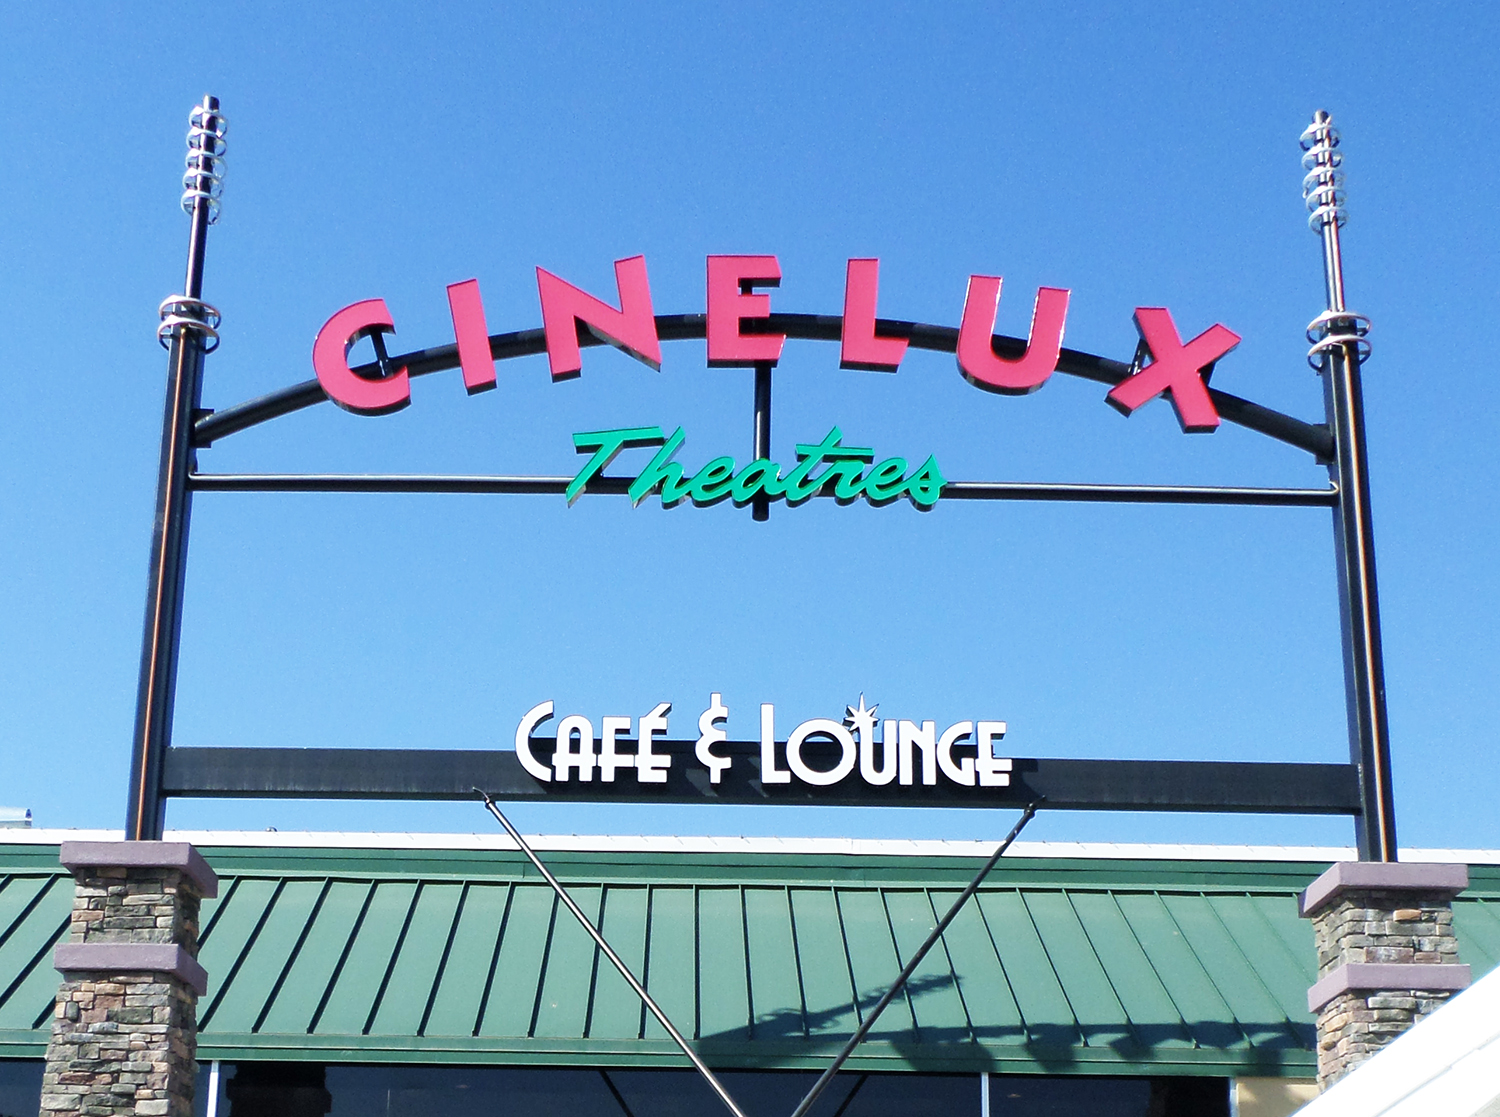 Channel letter sign for Cinelux Theaters